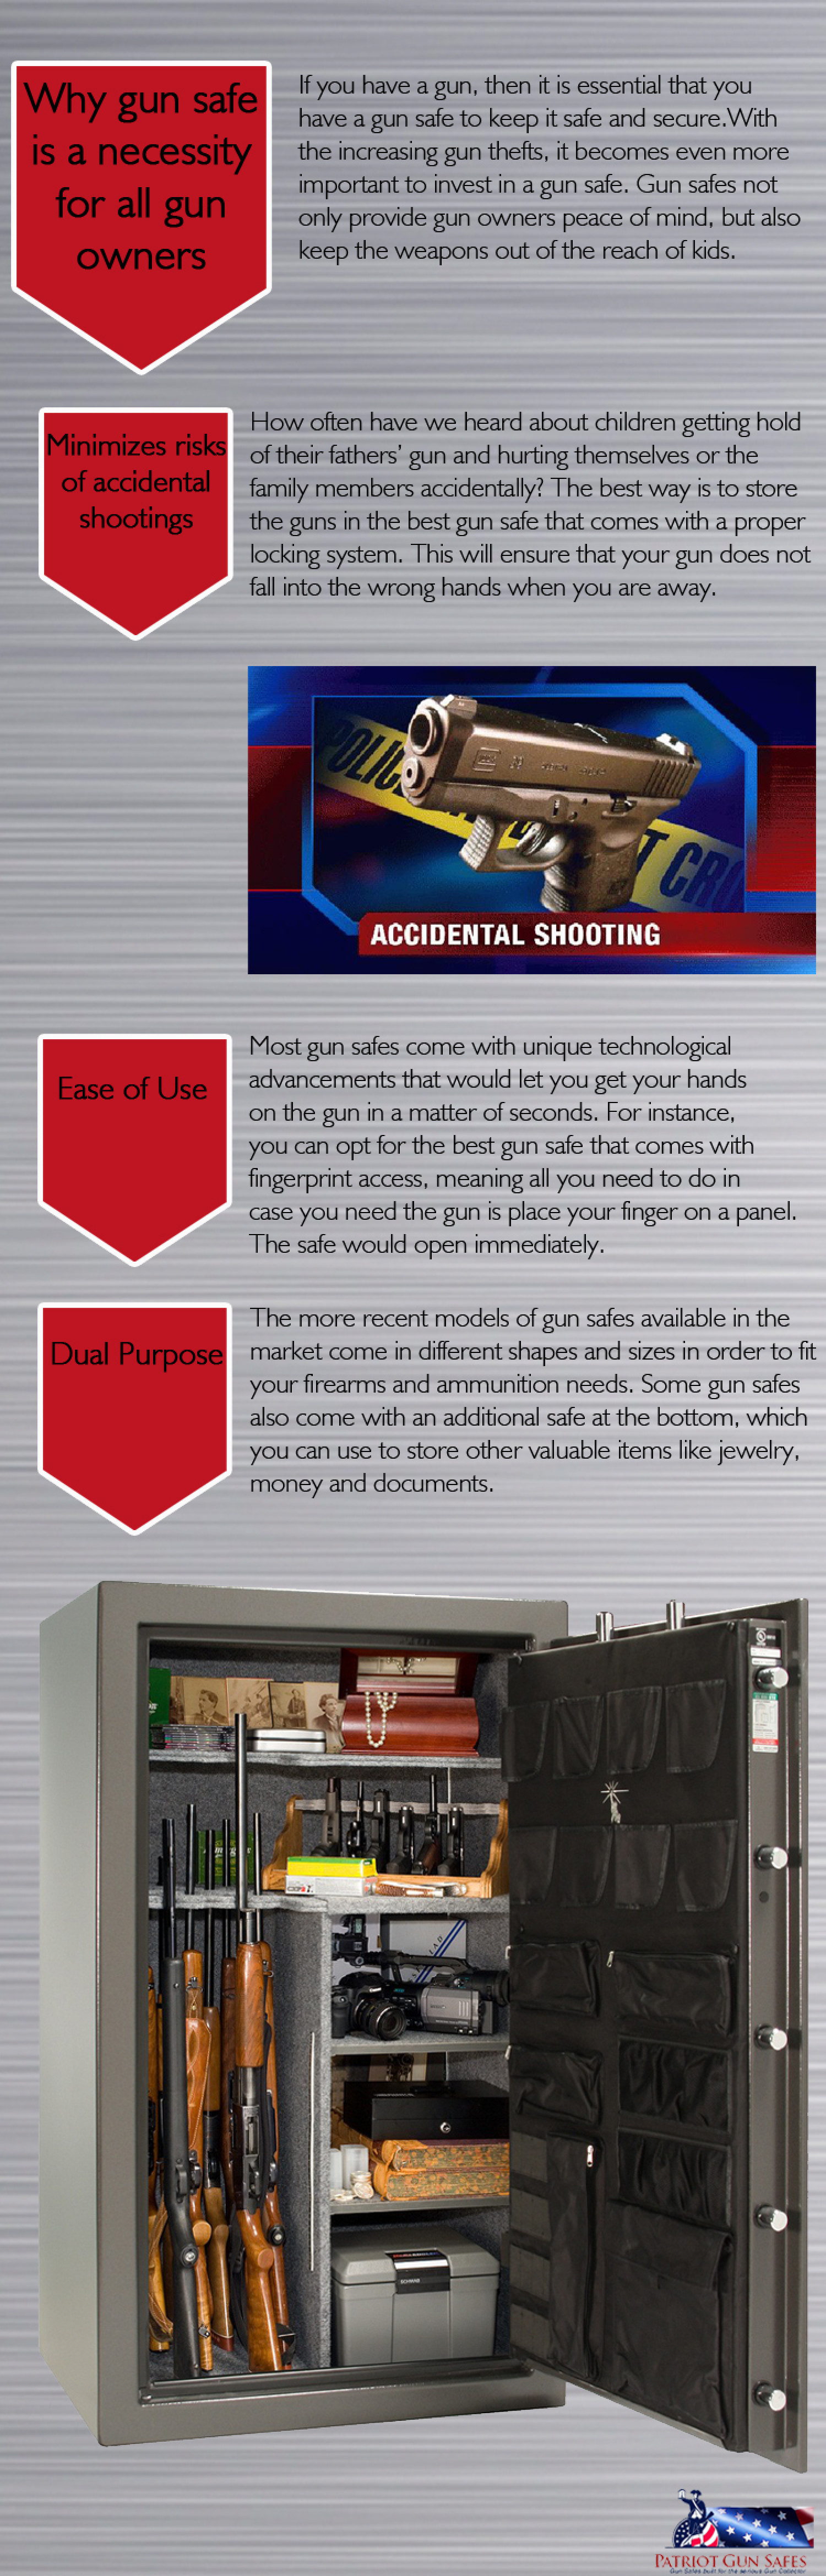 Why Gun Safe Is A Necessity For All Gun Owners Infographic